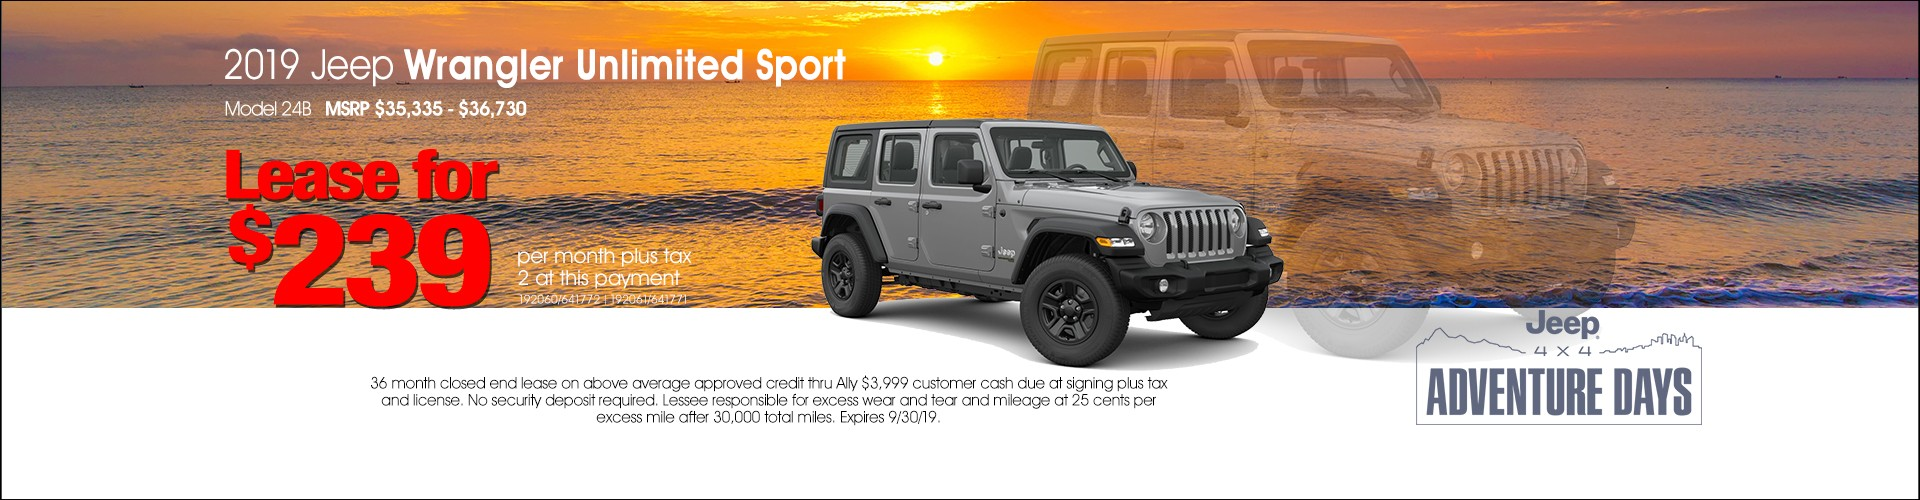 Glenn E  Thomas Dodge Chrysler Jeep | Long Beach Area Jeep